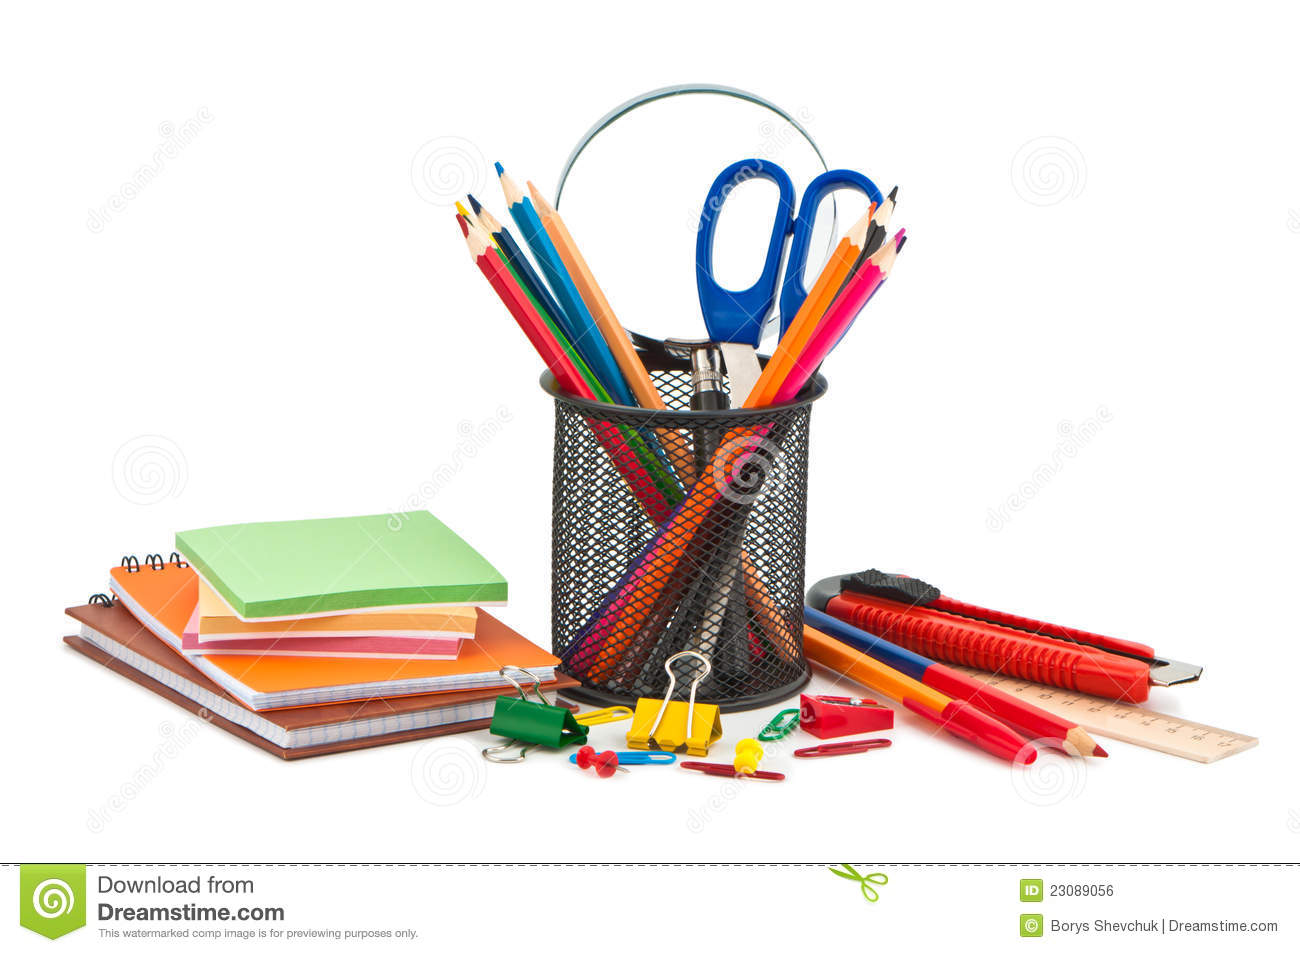 Miscellaneous office supplies royalty free stock image for Office design tool